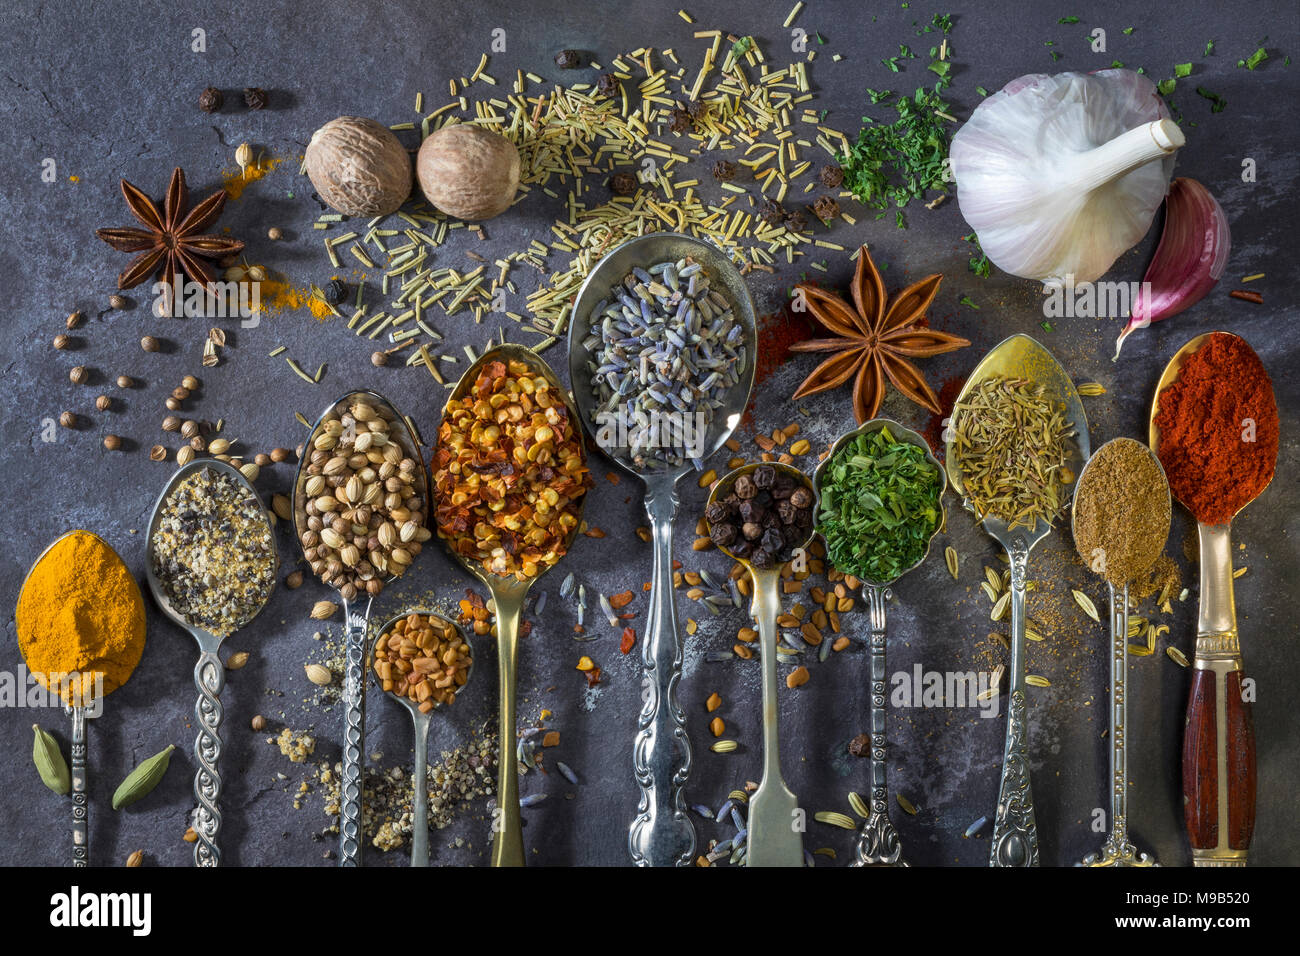 Spices on spoons - a selection of spices used to add flavor to cooking. - Stock Image